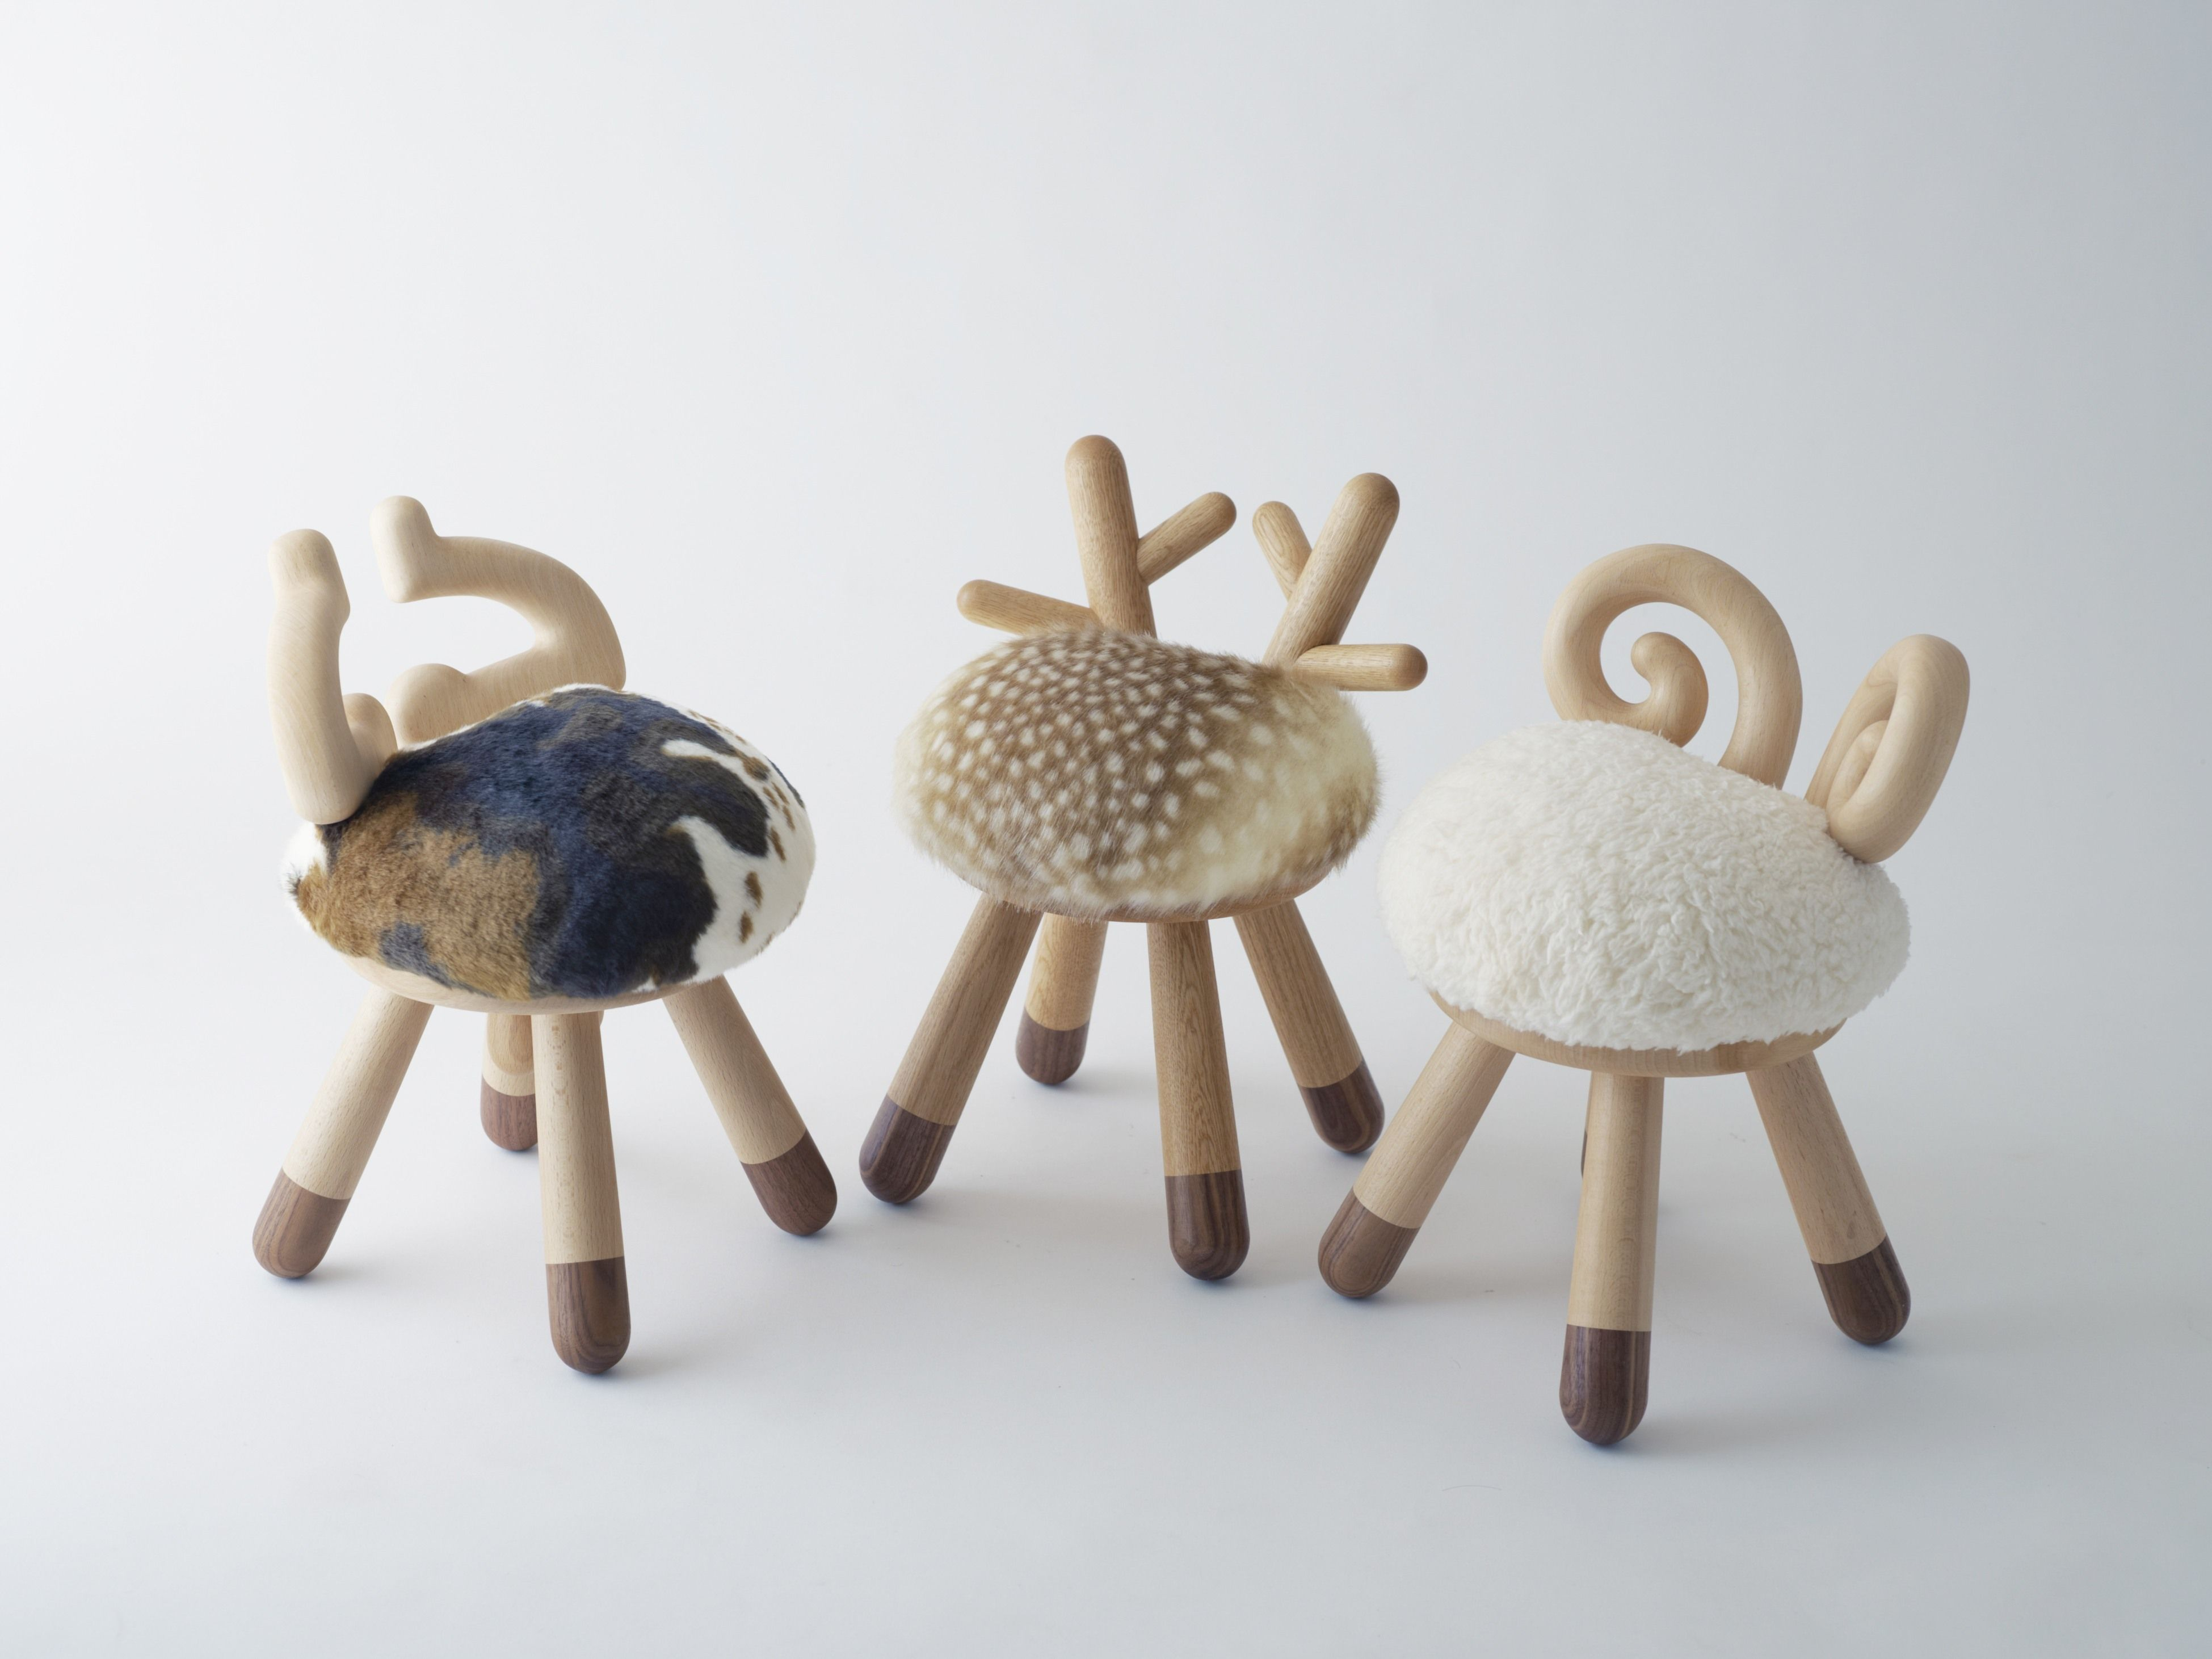 Cow Chair, Bambi Chair U0026 Sheep Chair By Takeshi Sawasa For Kamina C